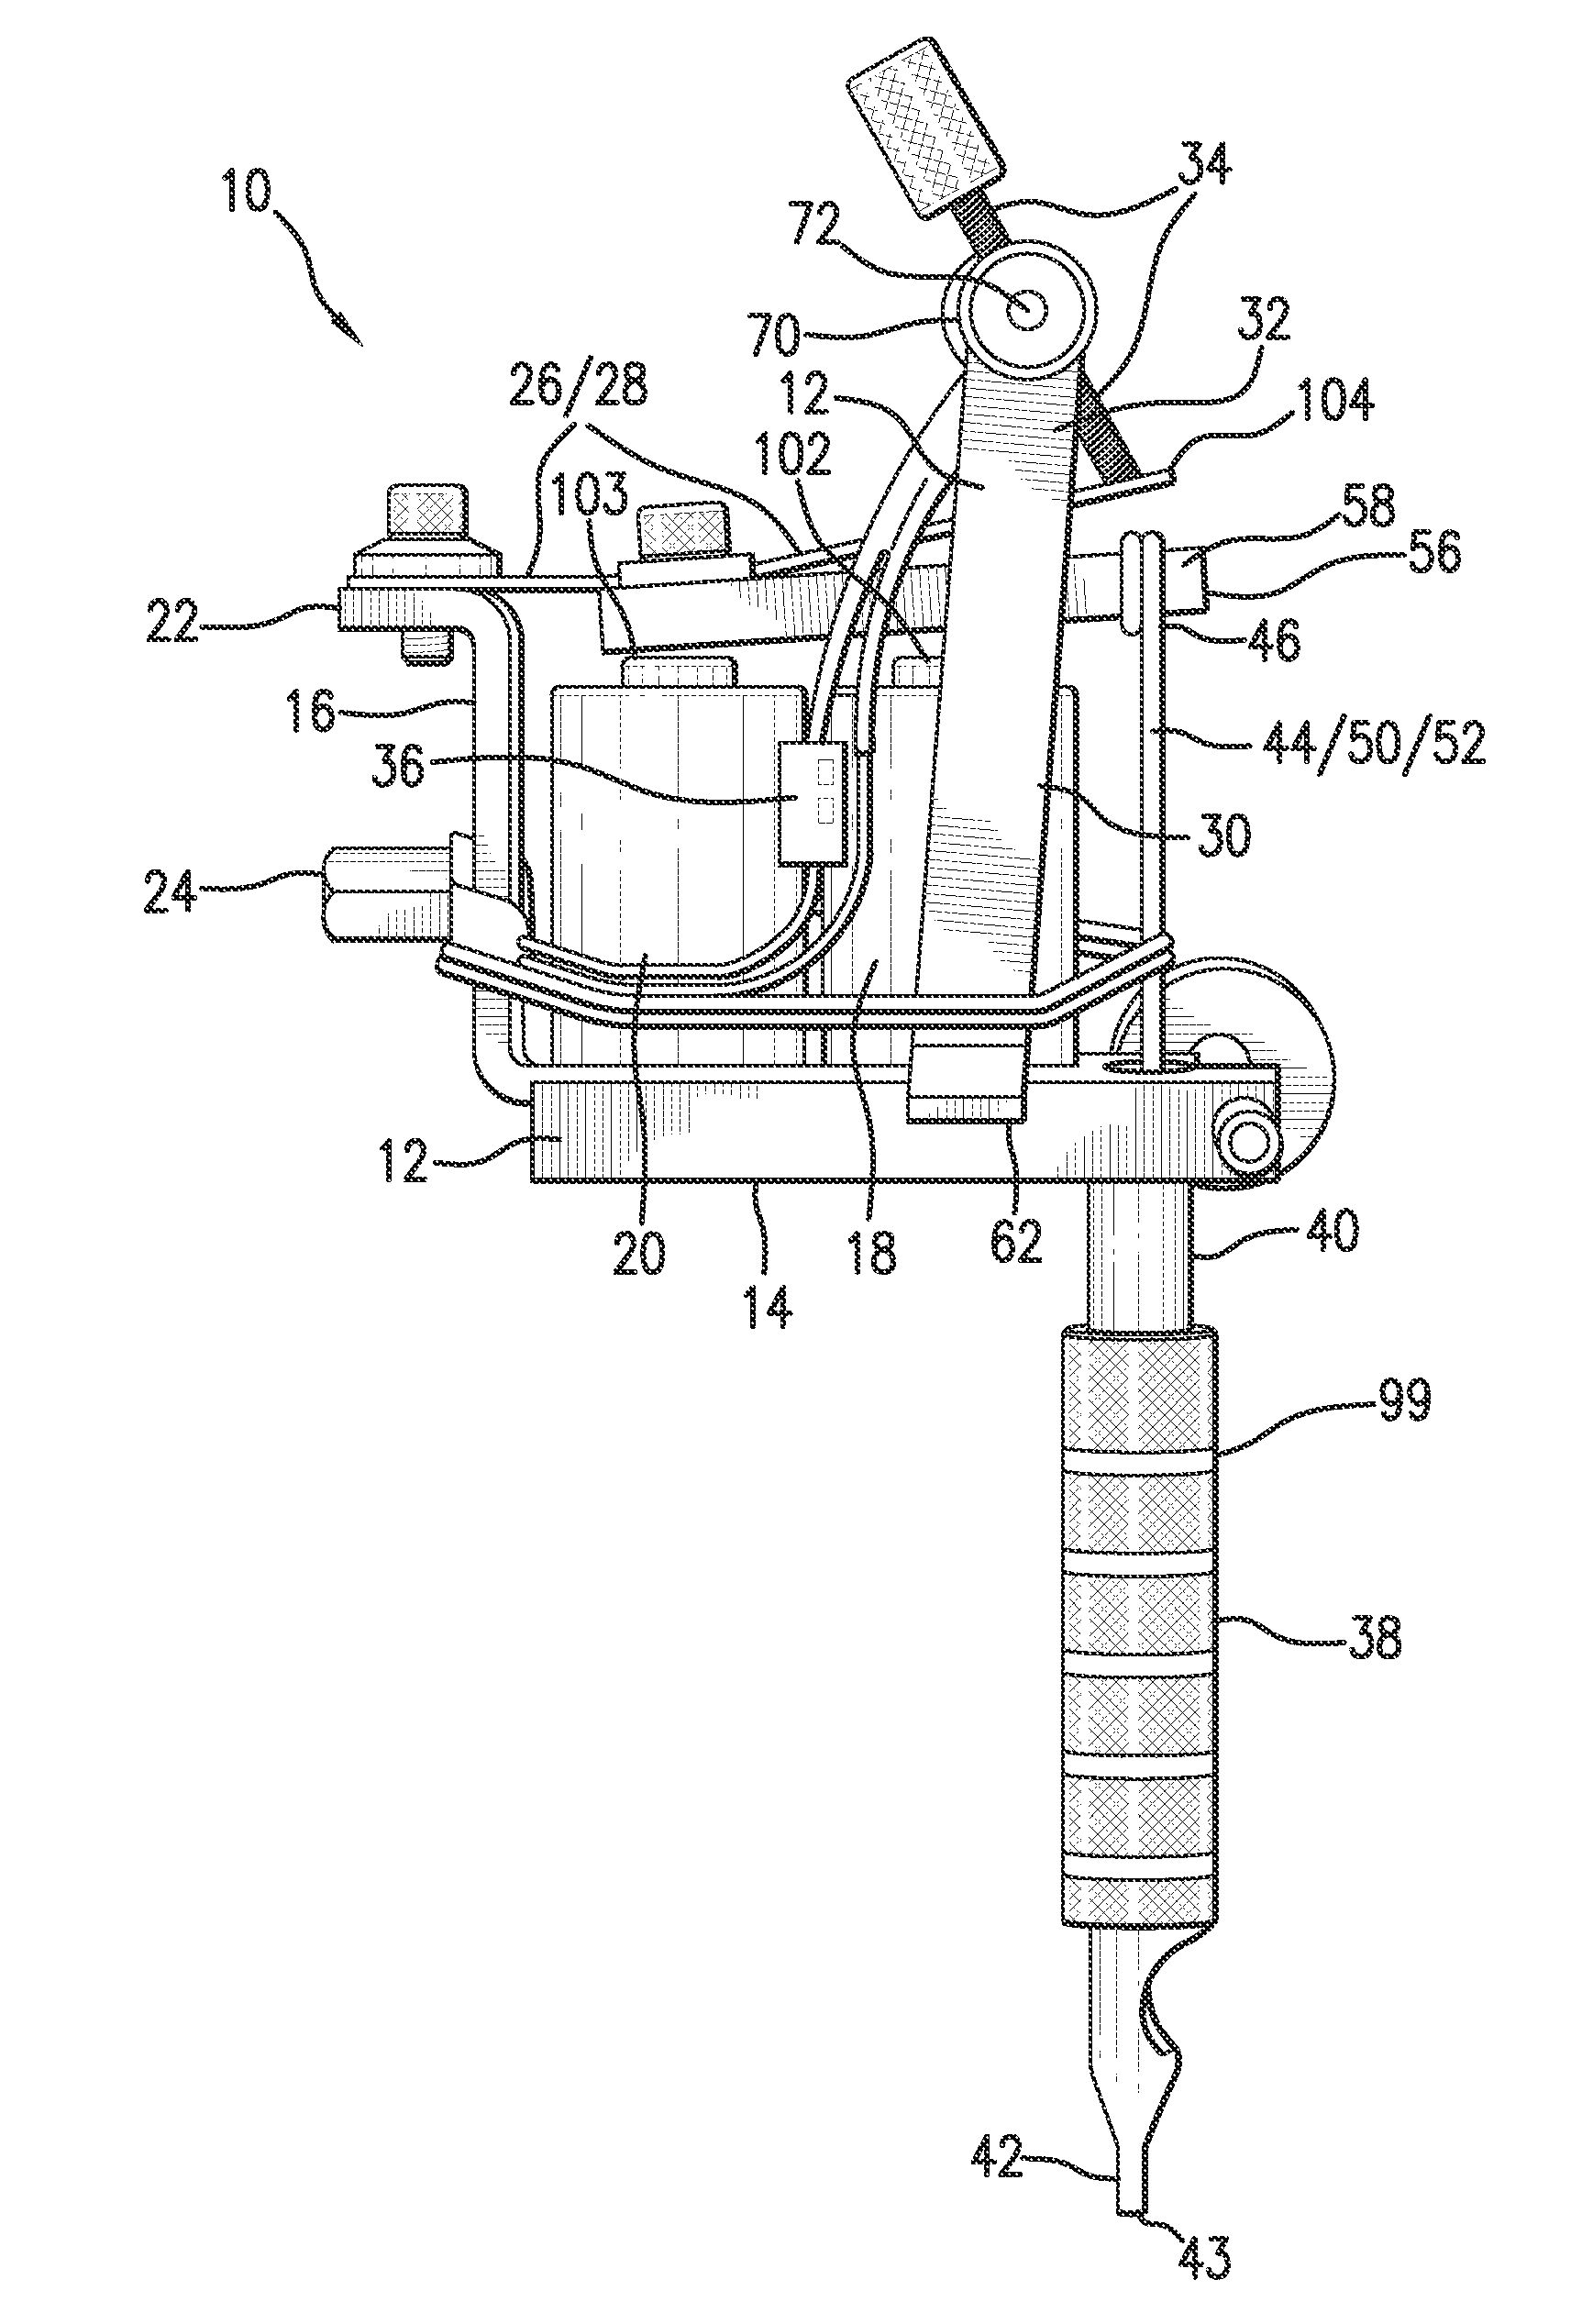 patent us20100192730 control device for a tattoo machine and  : tattoo gun diagram - findchart.co